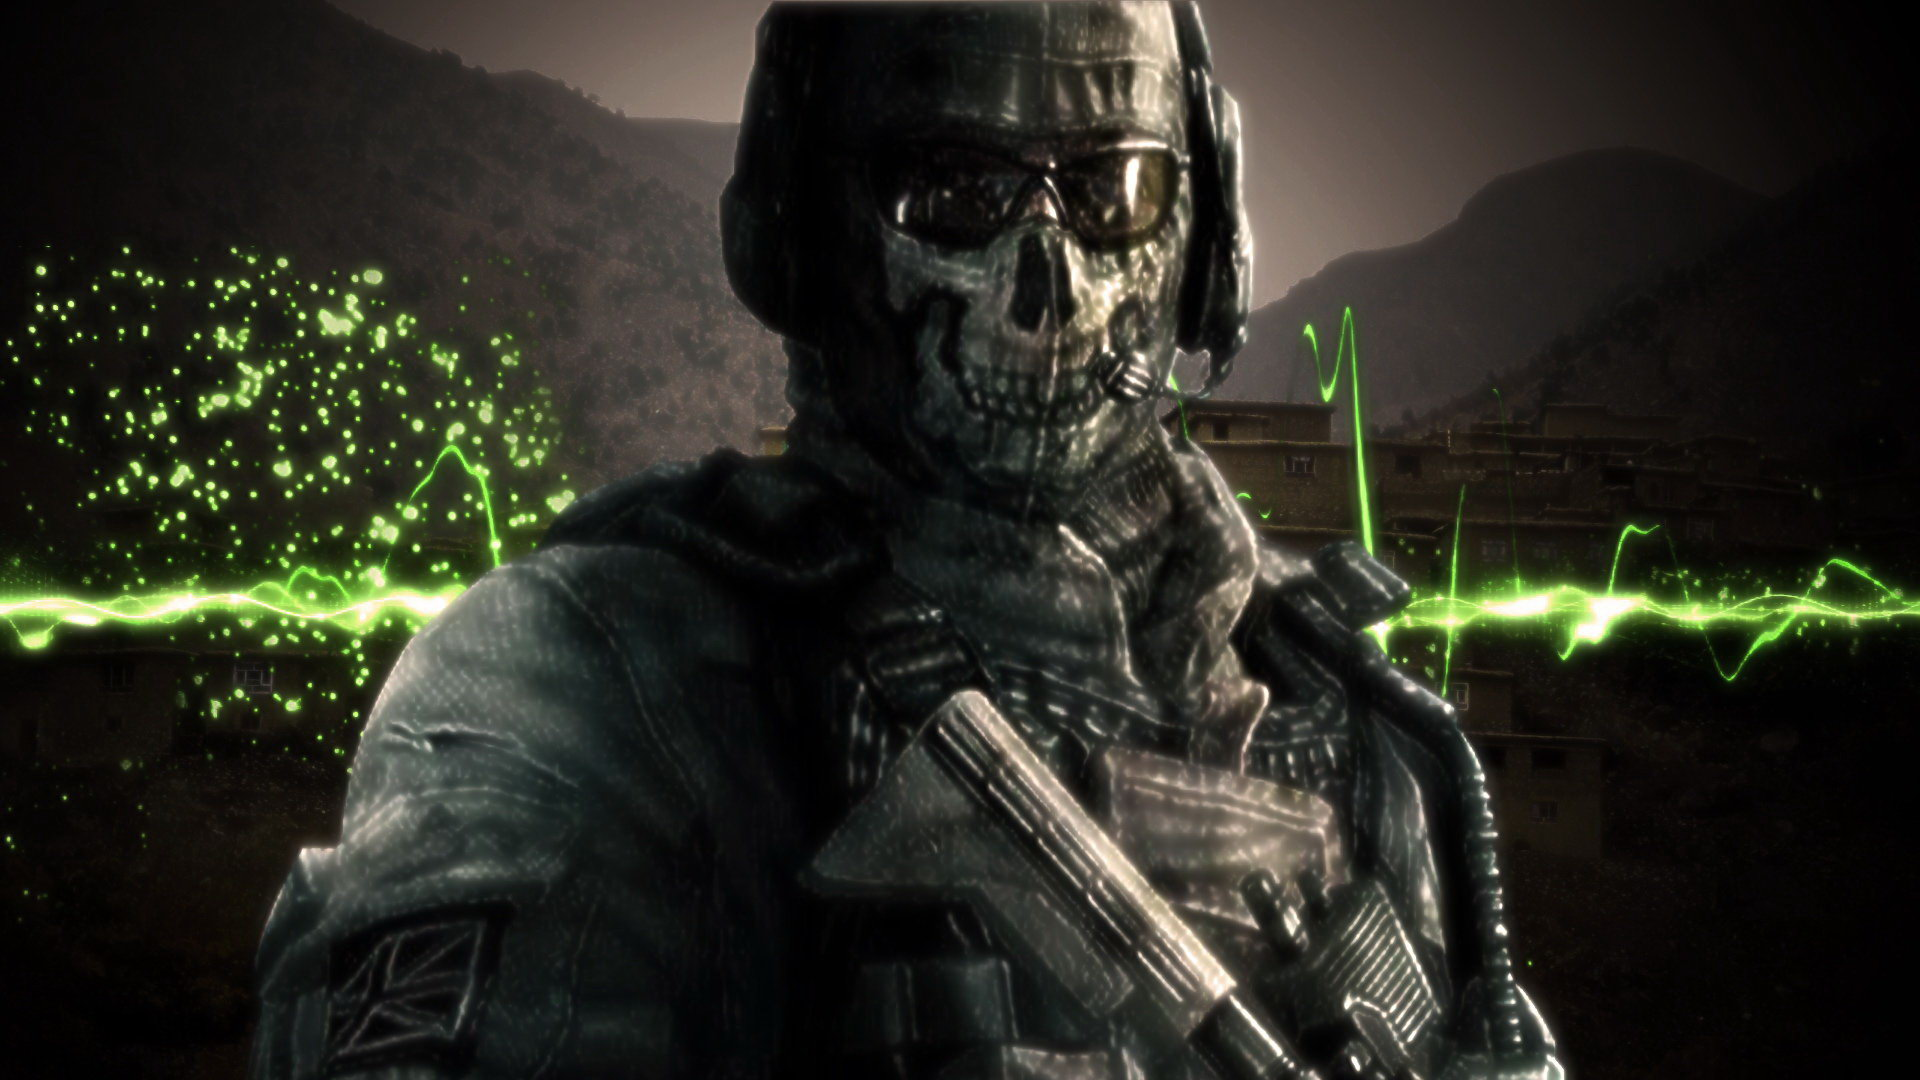 call of duty ghosts free wallpaper - HD Desktop Wallpapers ...